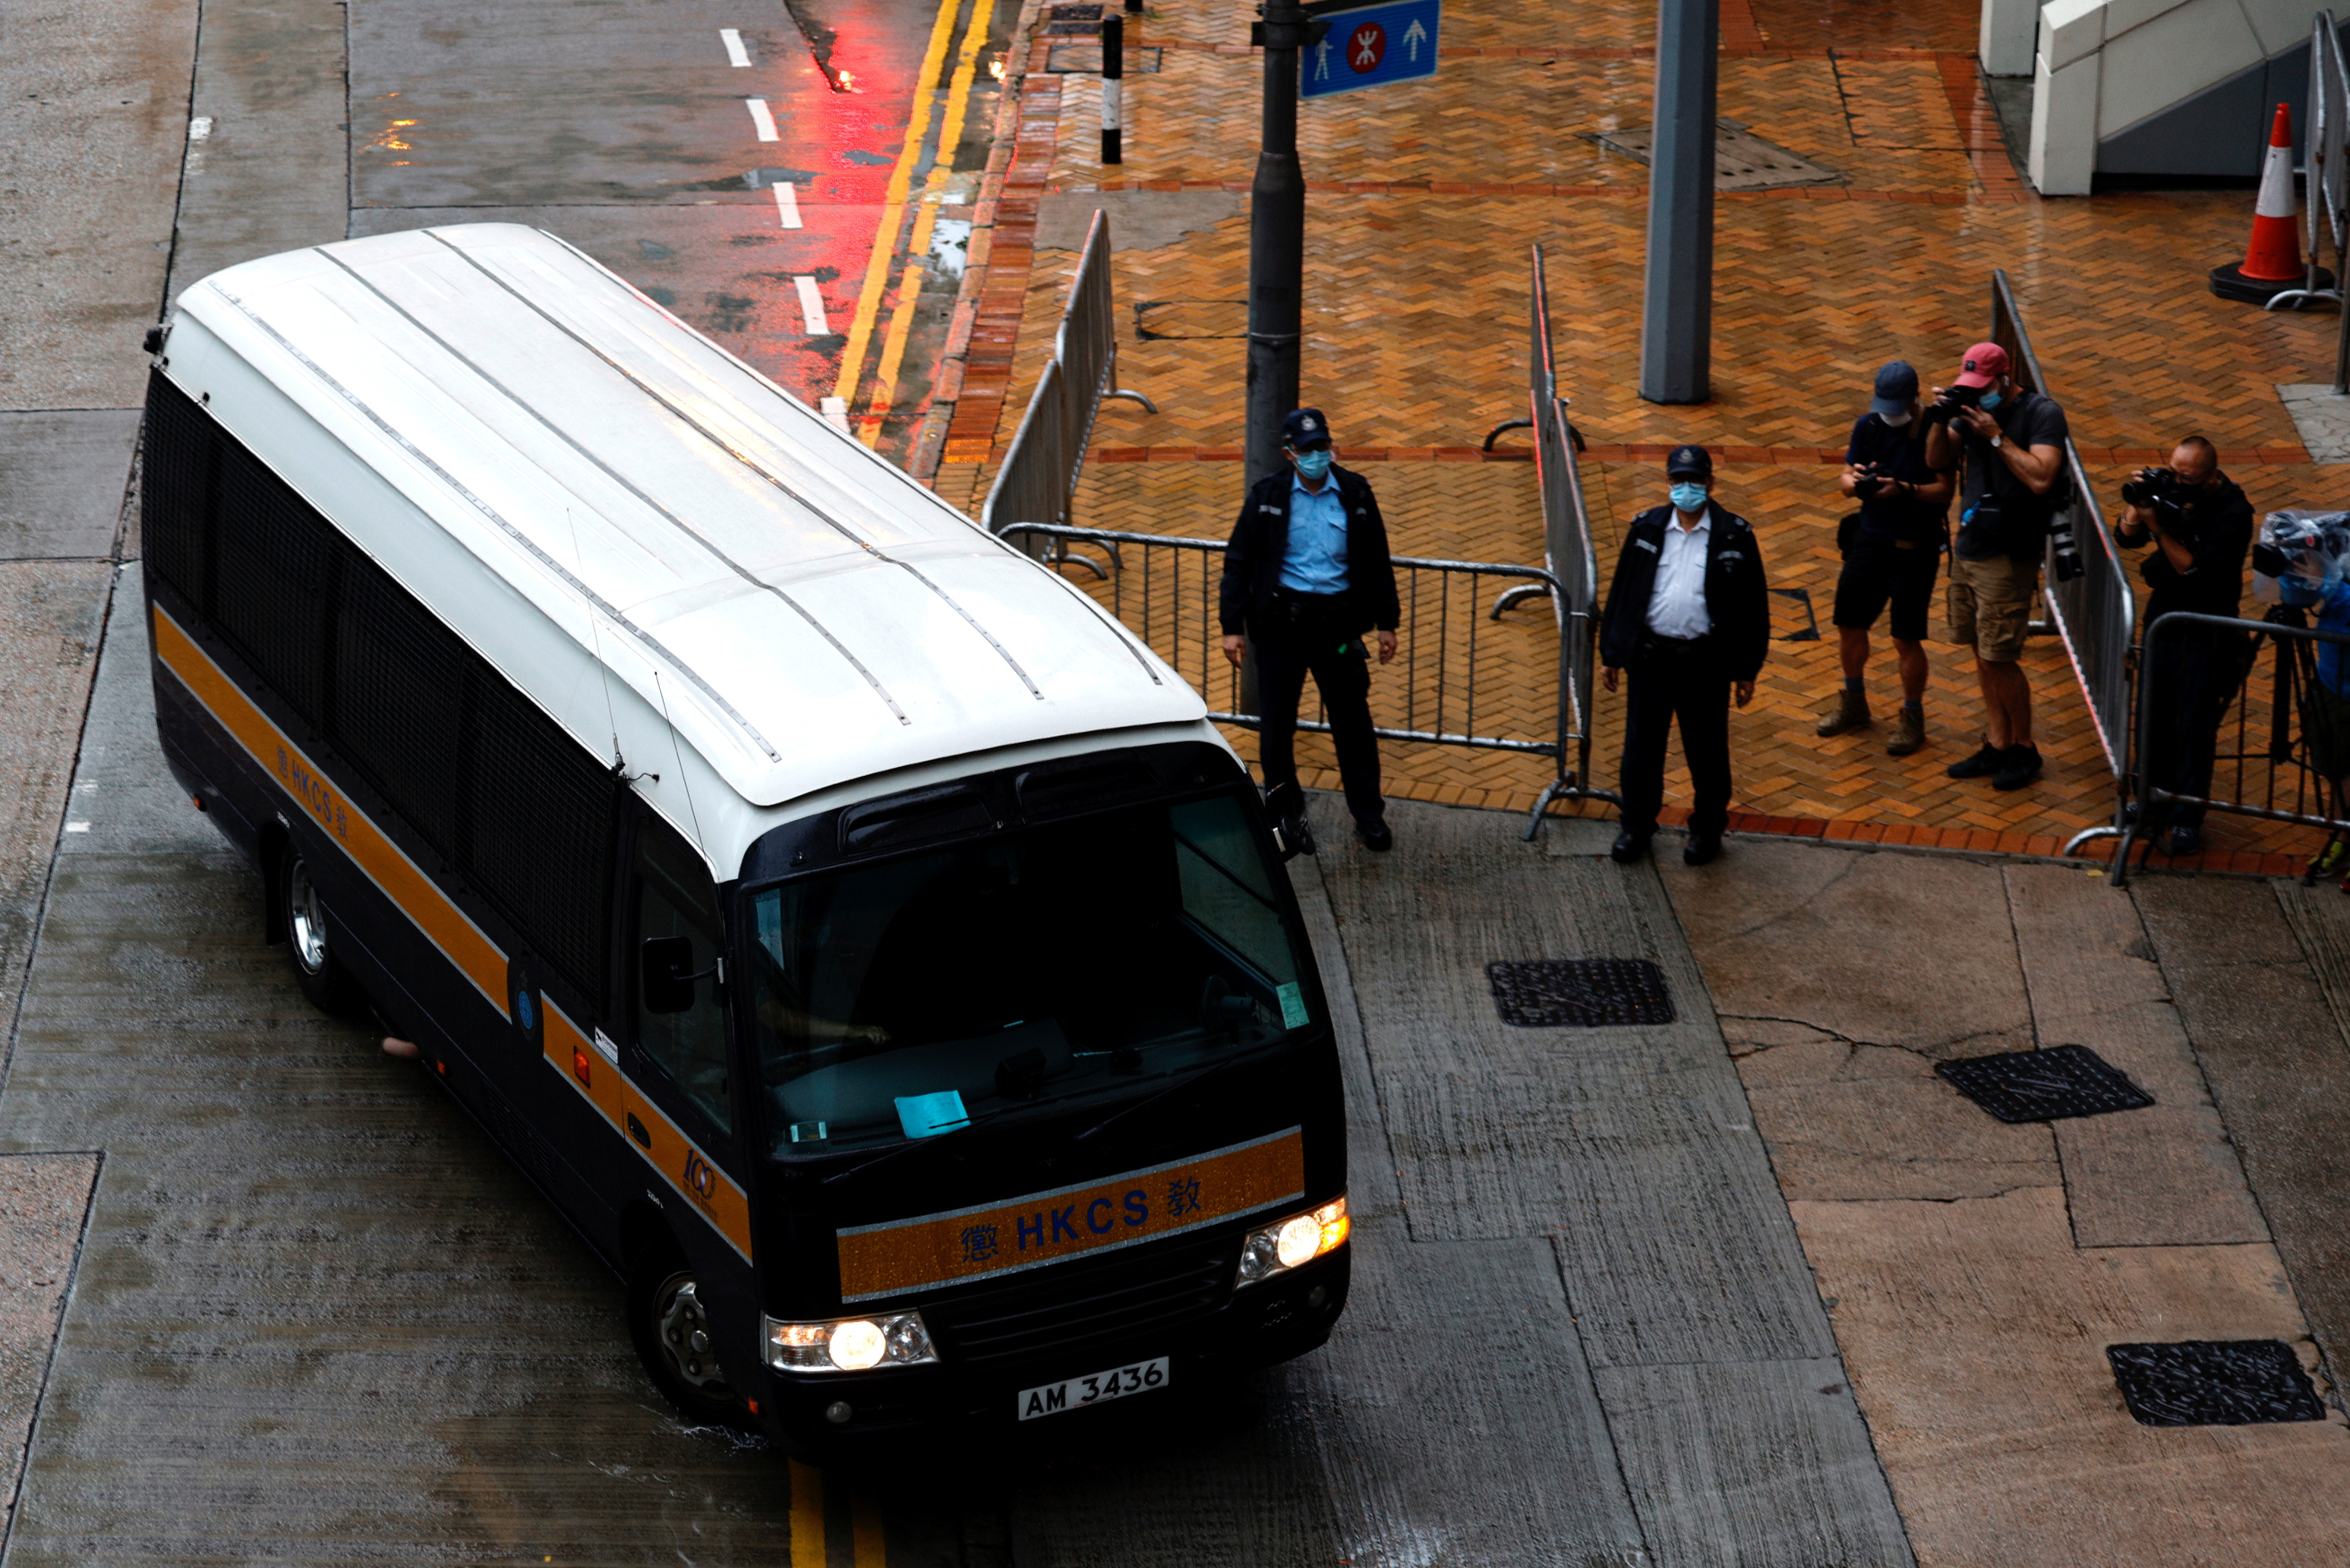 A prison van arrives as police stand guard for Tong Ying-kit's arrival, the first person charged under a new national security law, in Hong Kong, China, July 30, 2021. REUTERS/Tyrone Siu